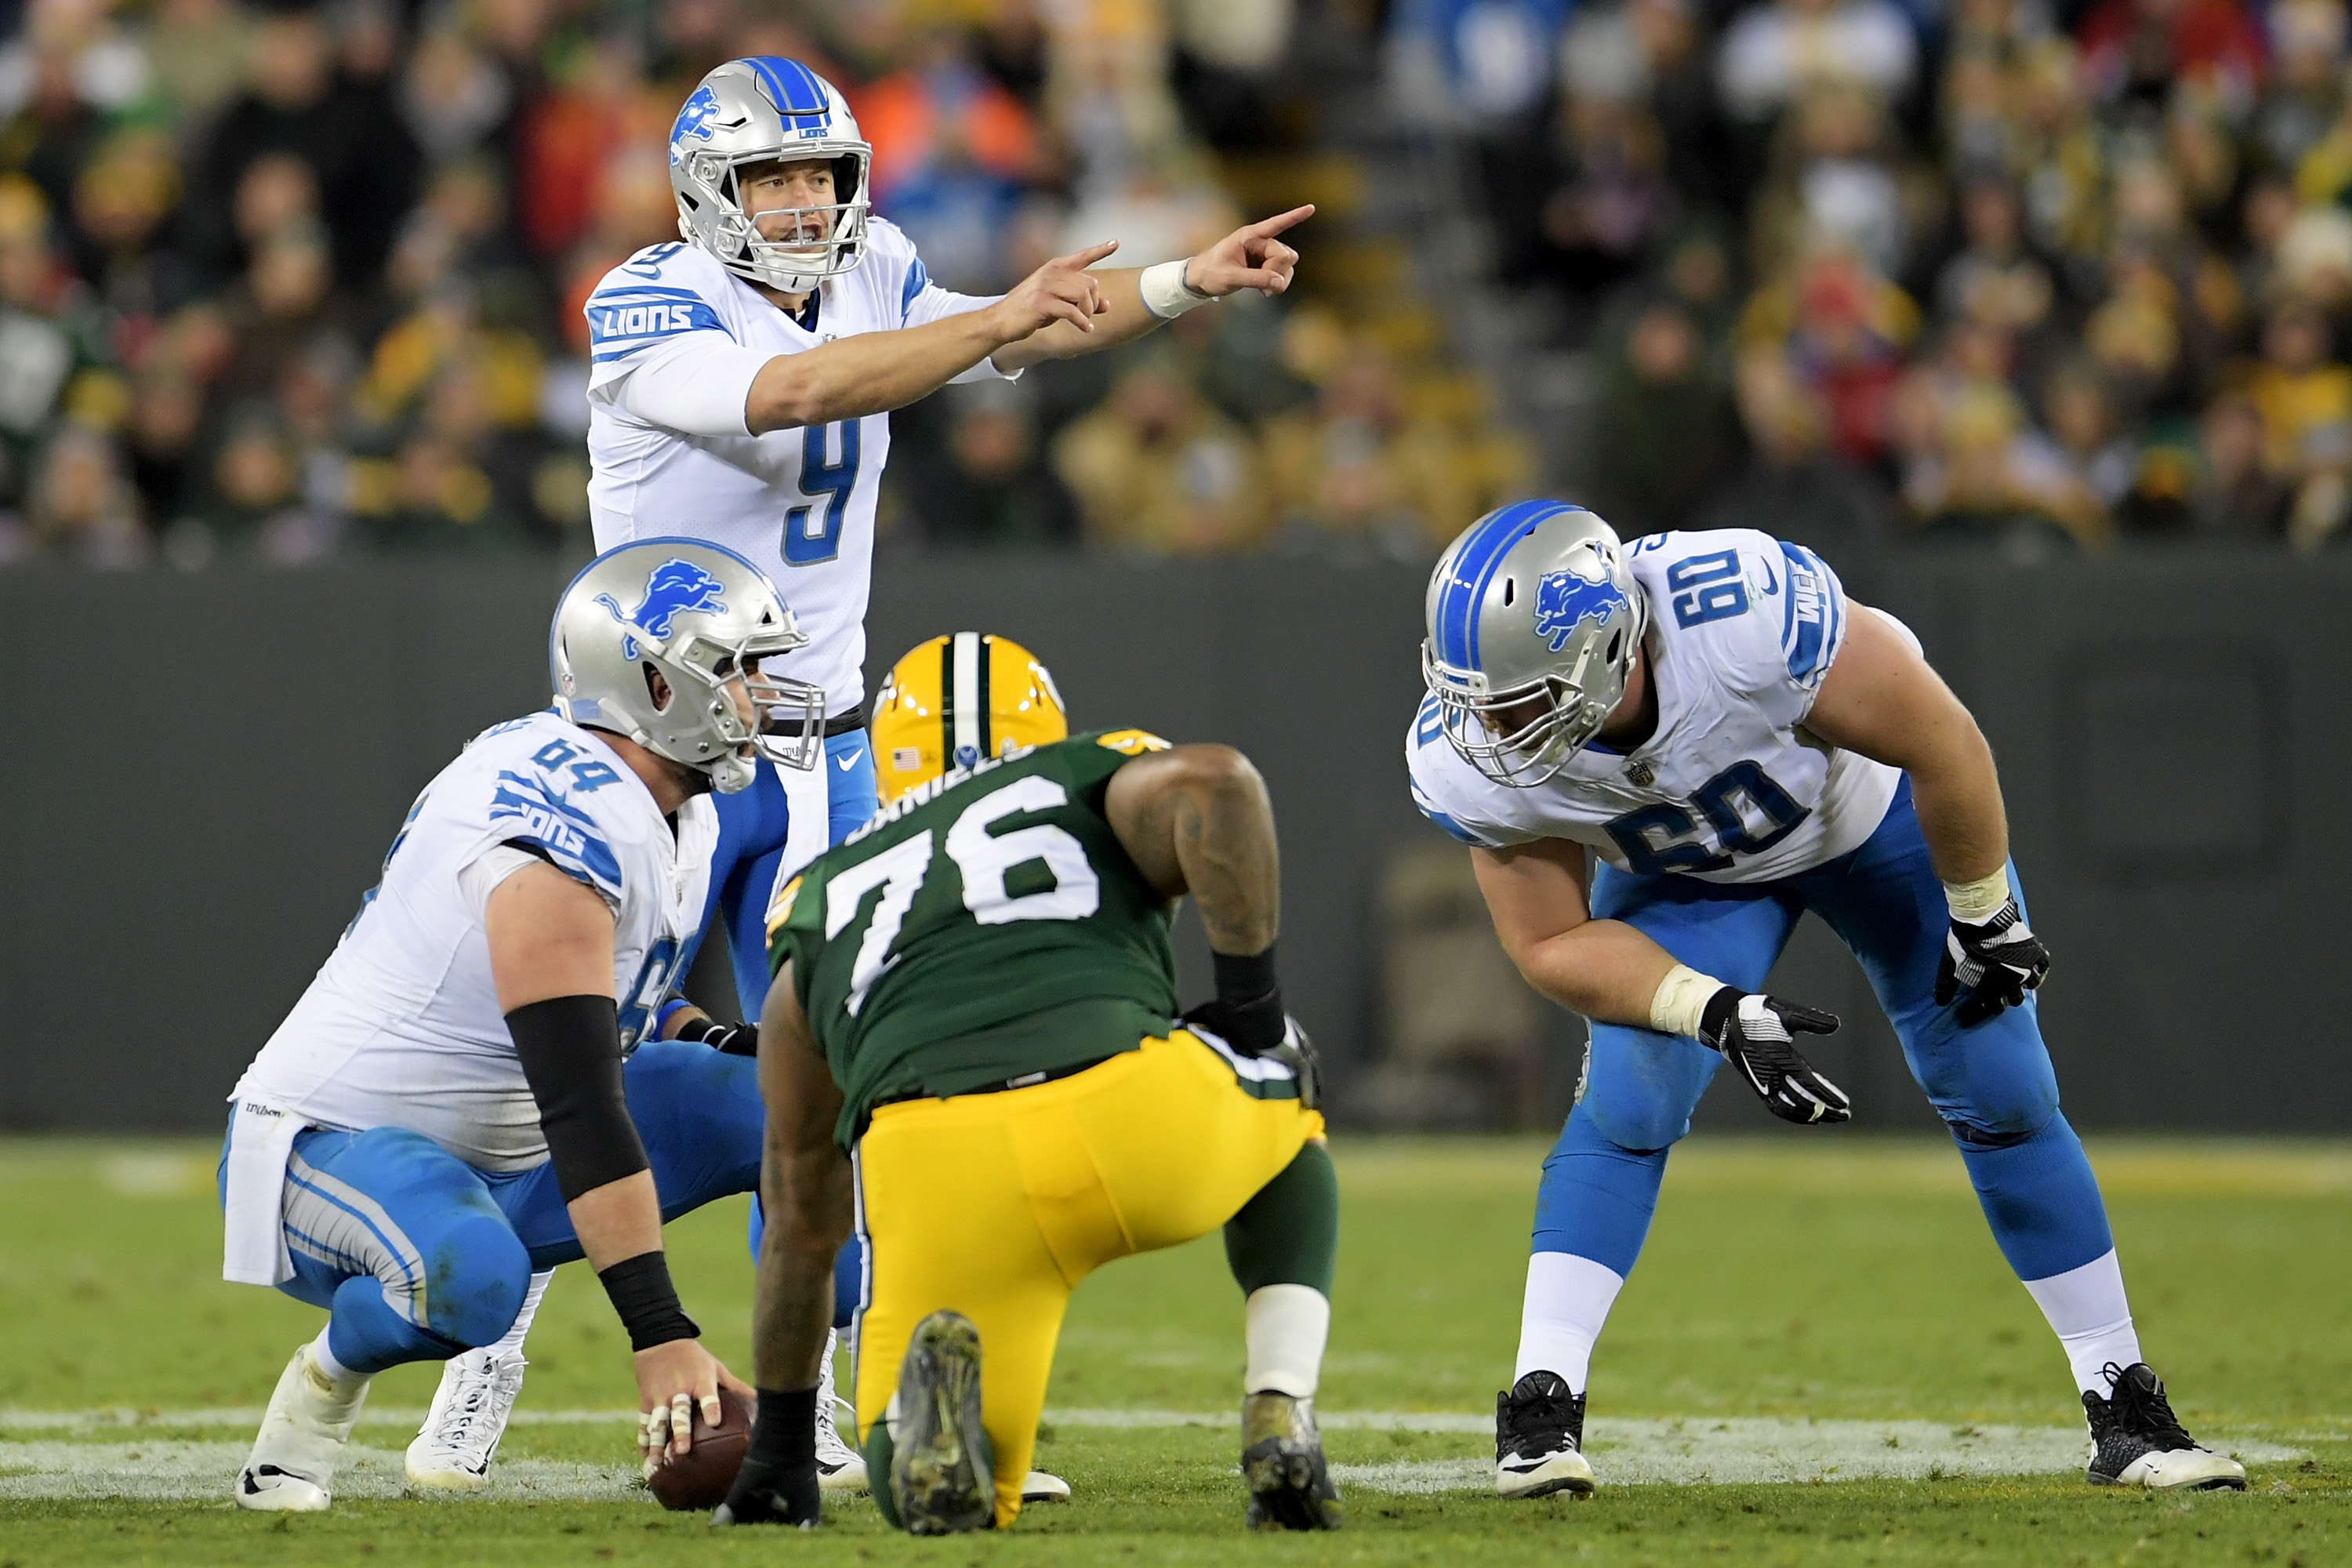 Stafford throws 3 TDs as Lions beat winless Browns